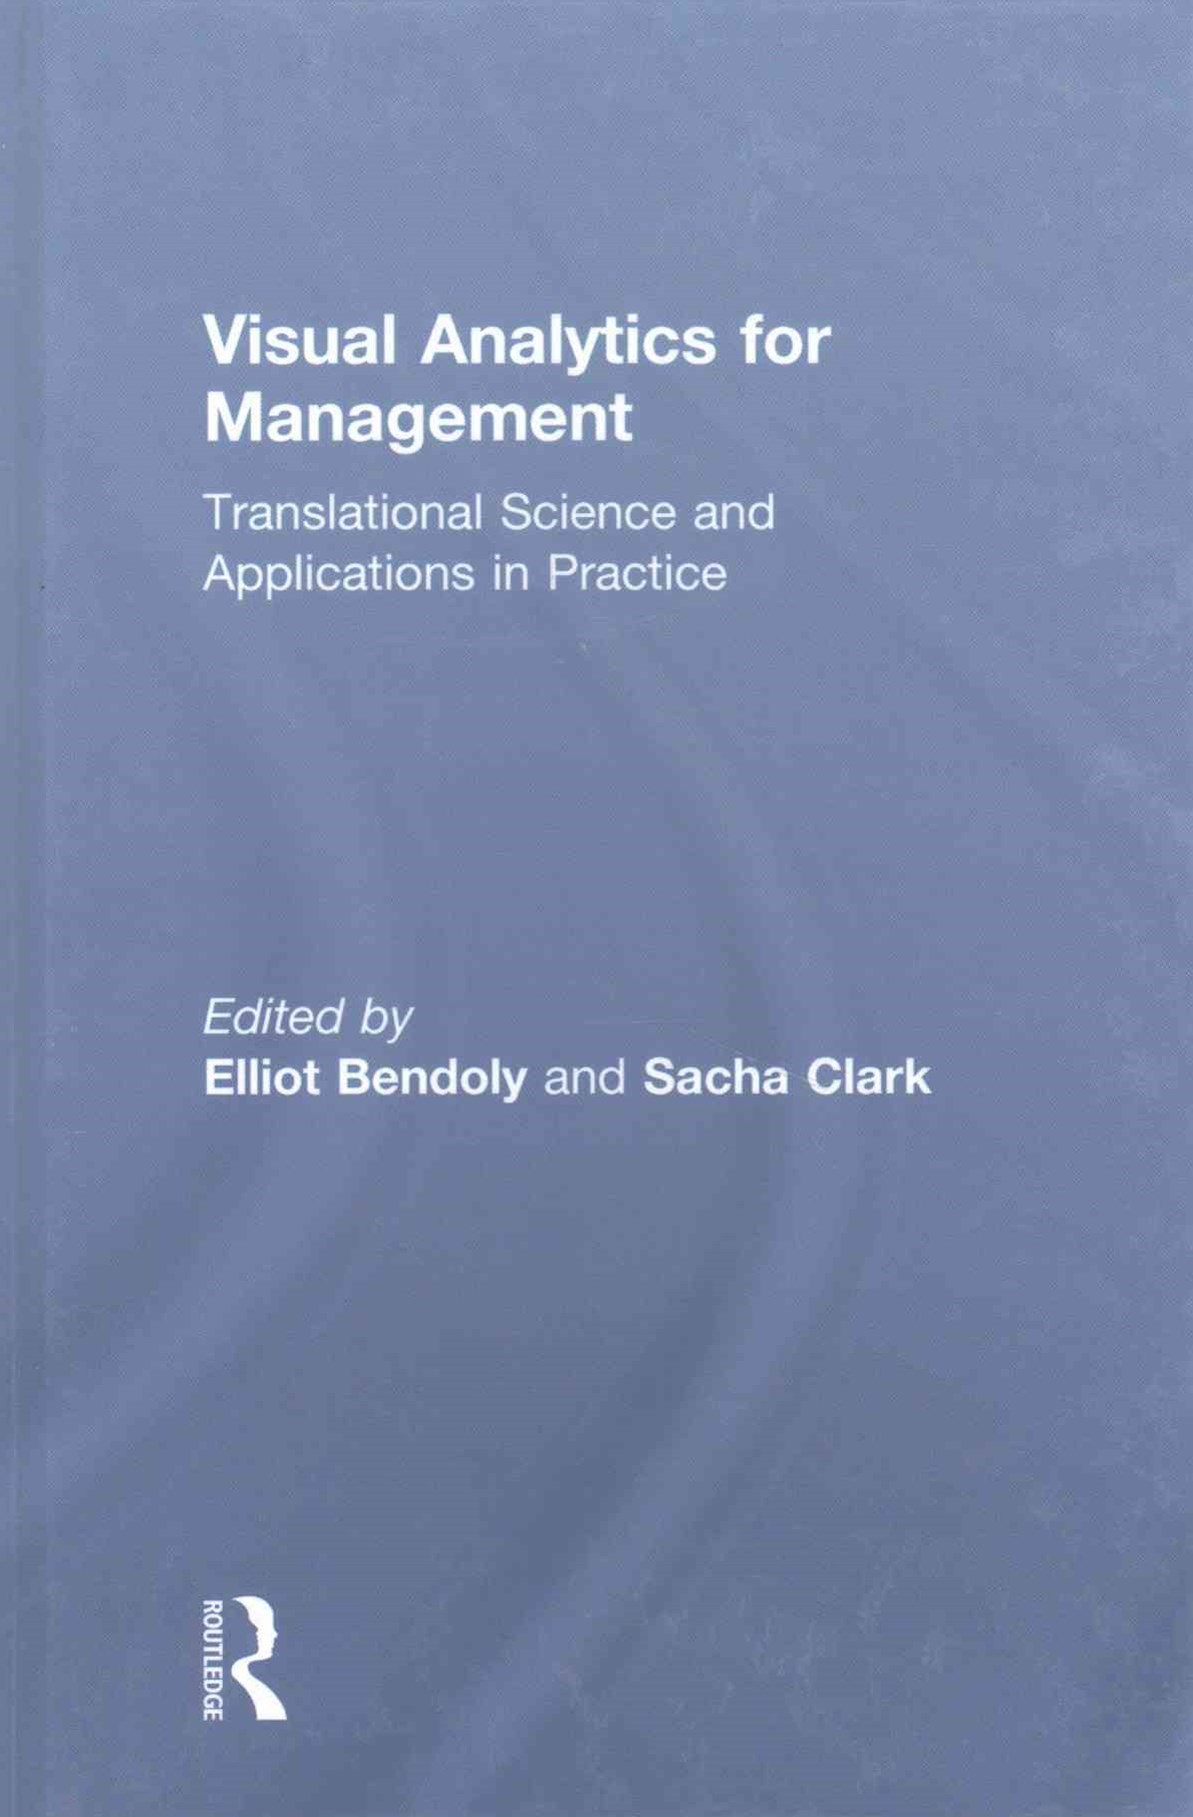 Visual Analytics for Management